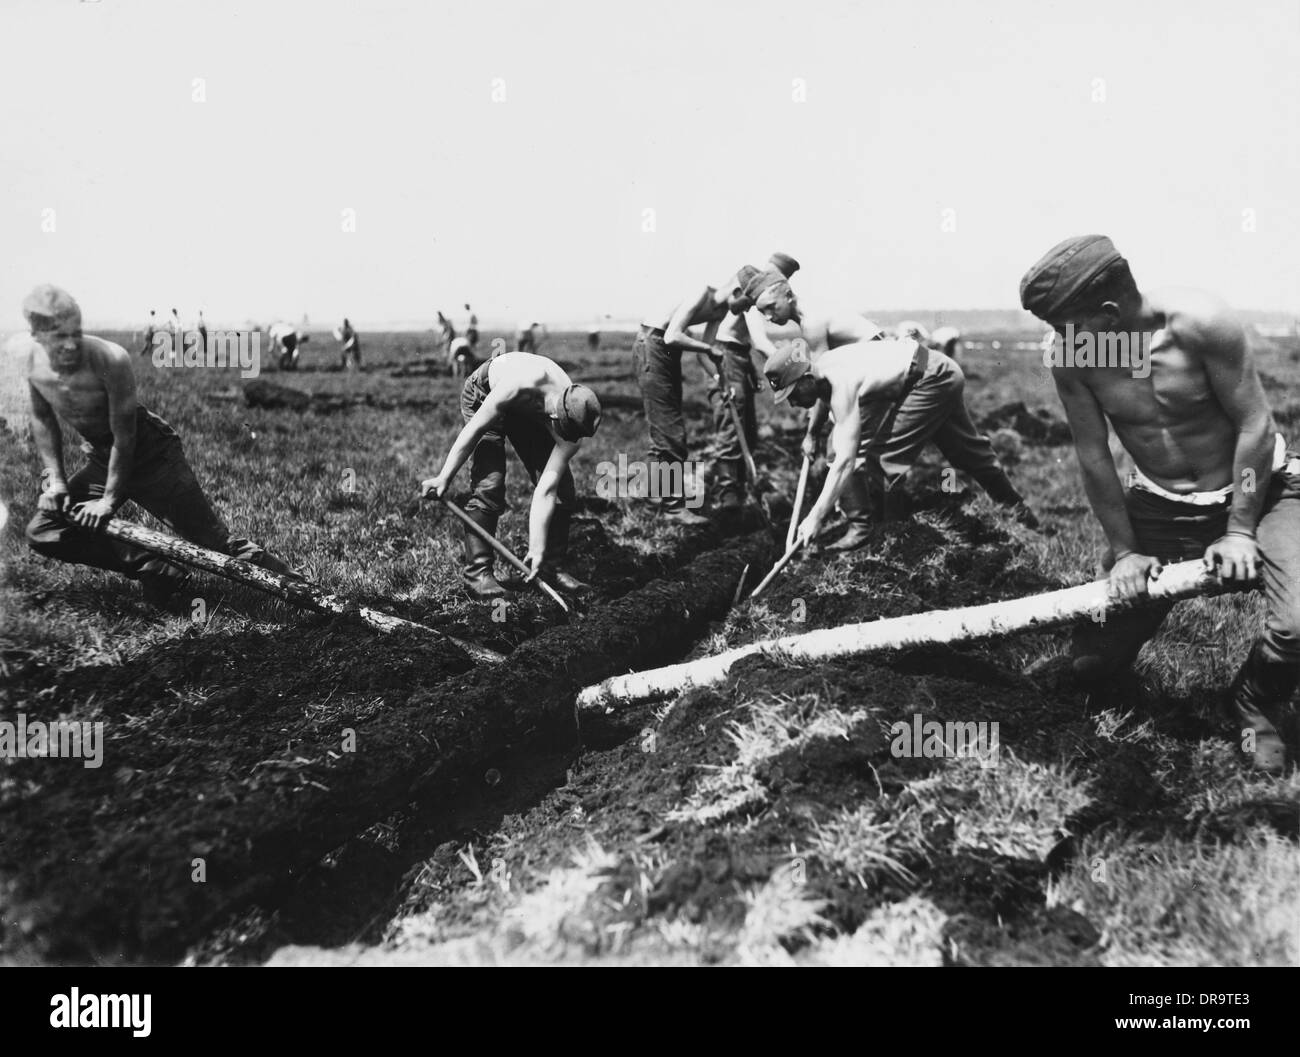 Land workers, Germany 1930s - Stock Image